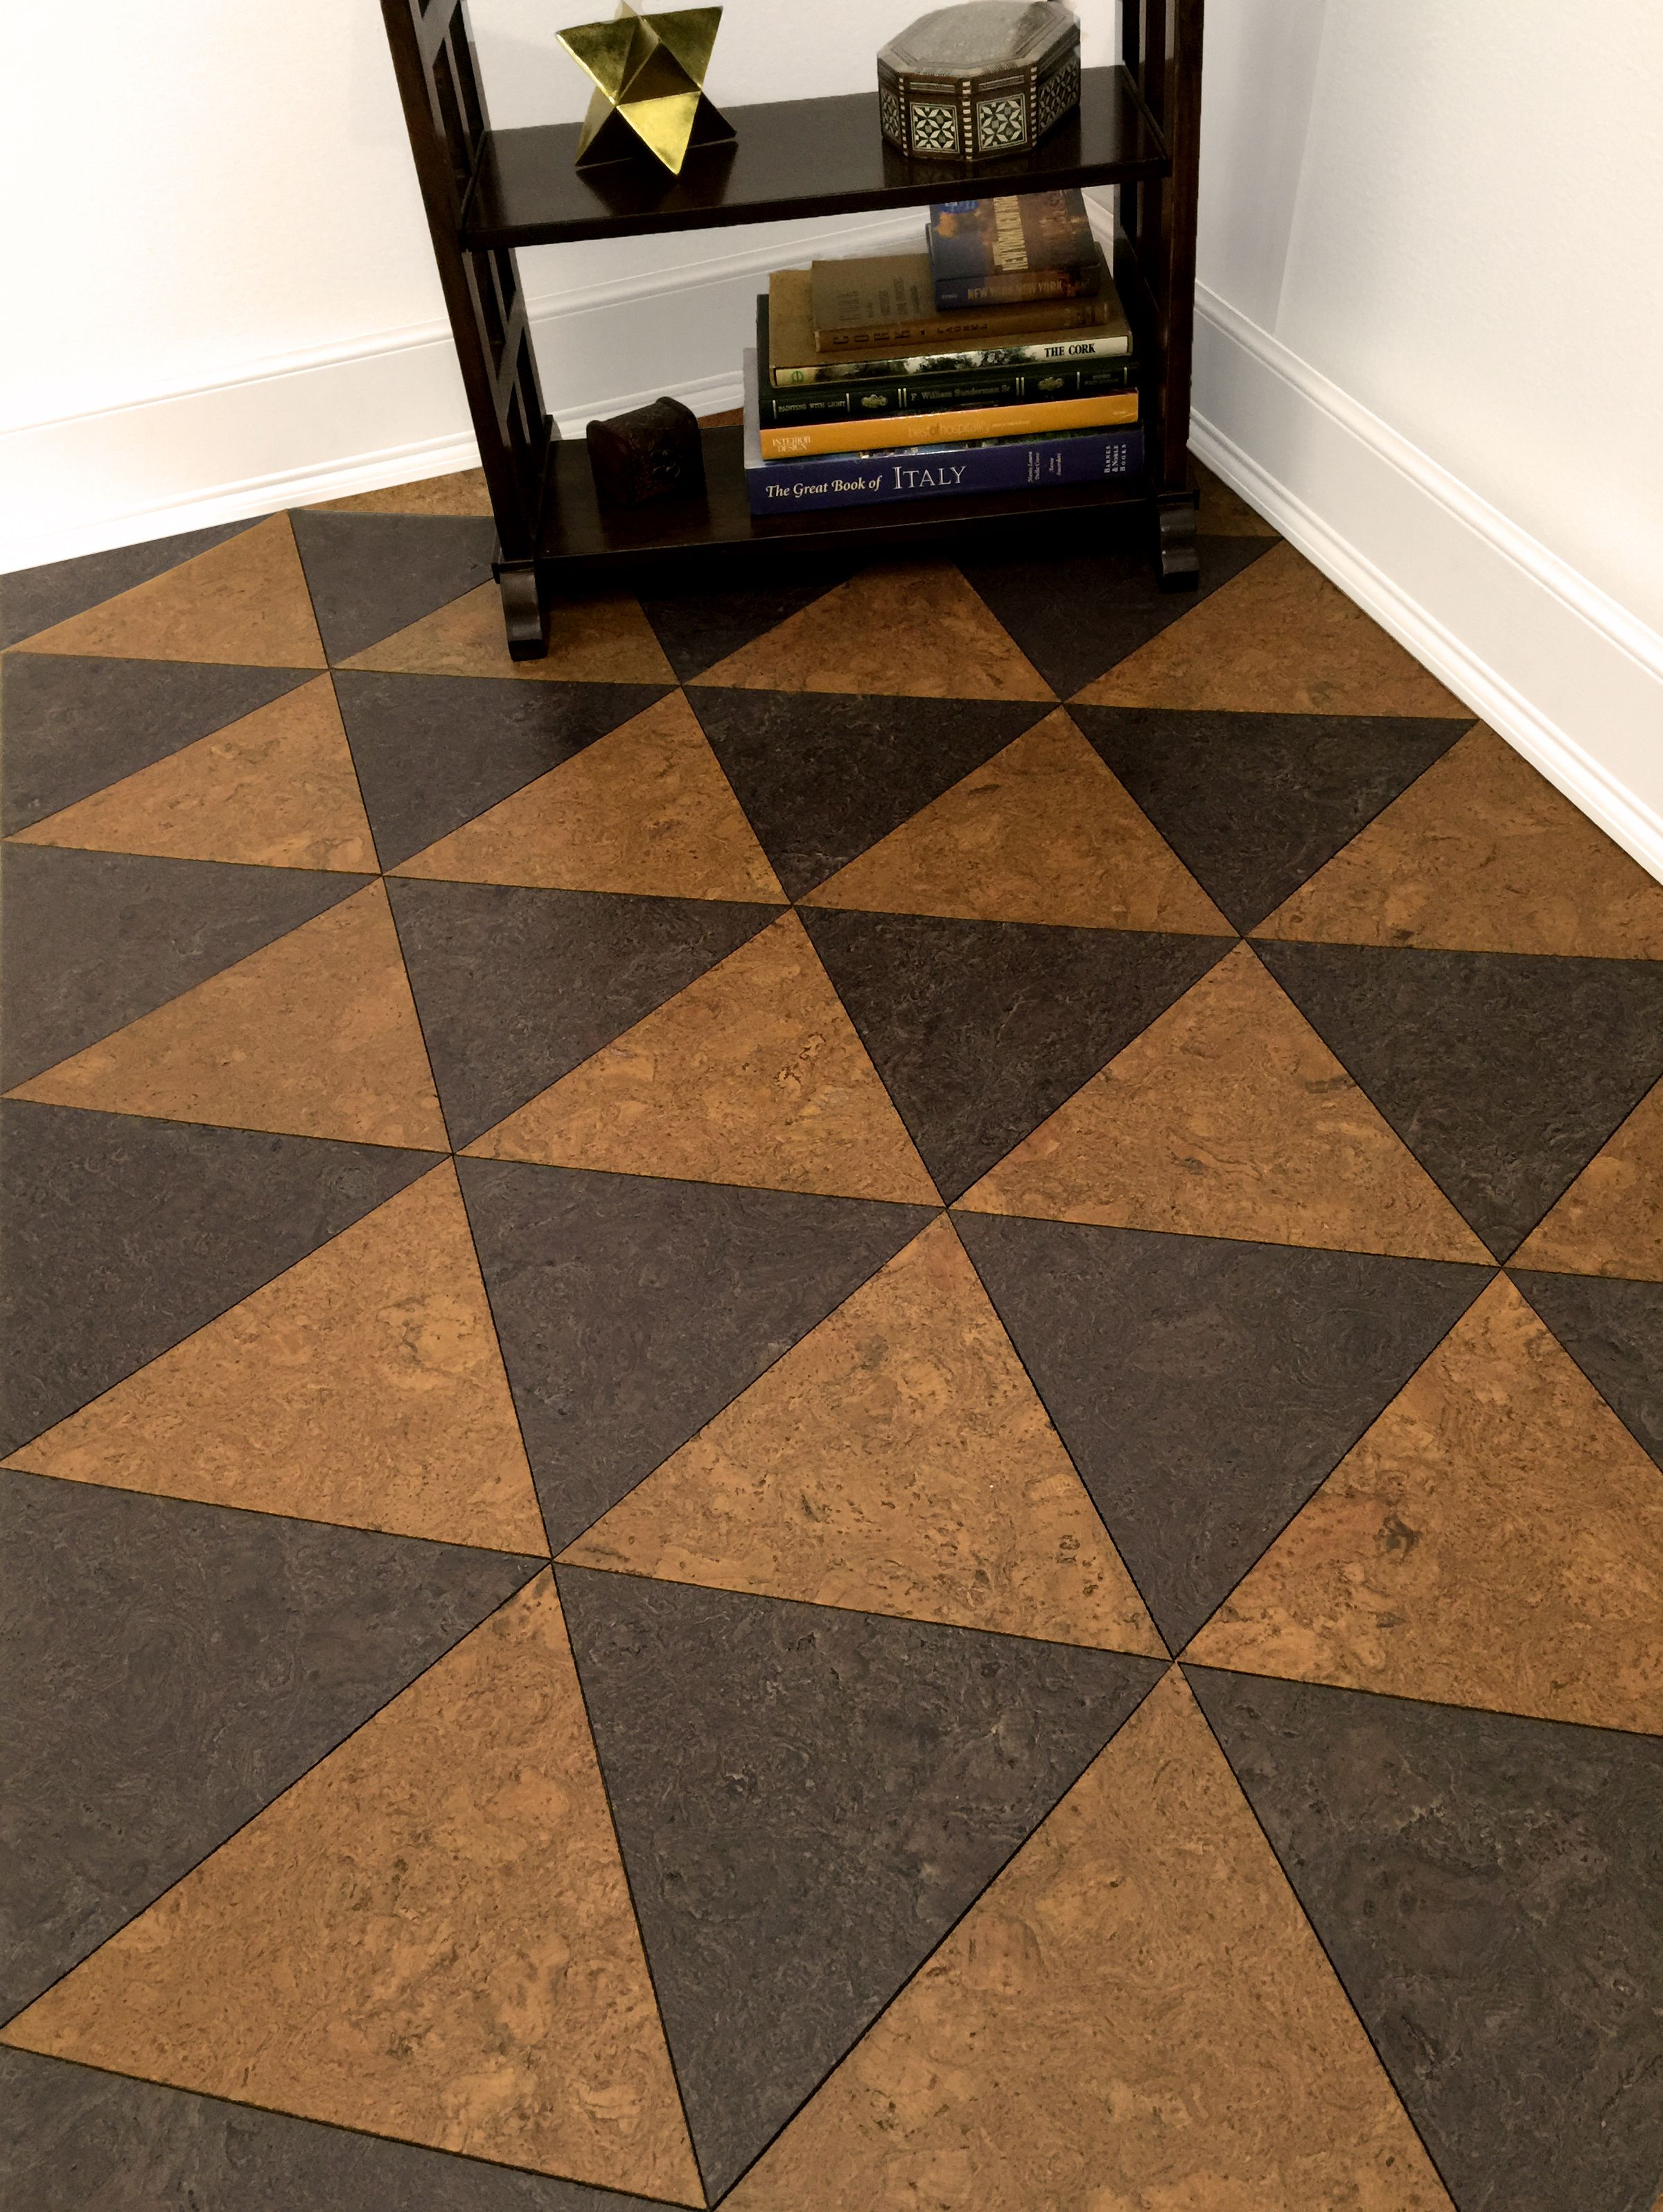 Cork tiles for flooring yes this is a cork floor from for Is cork flooring good for basements